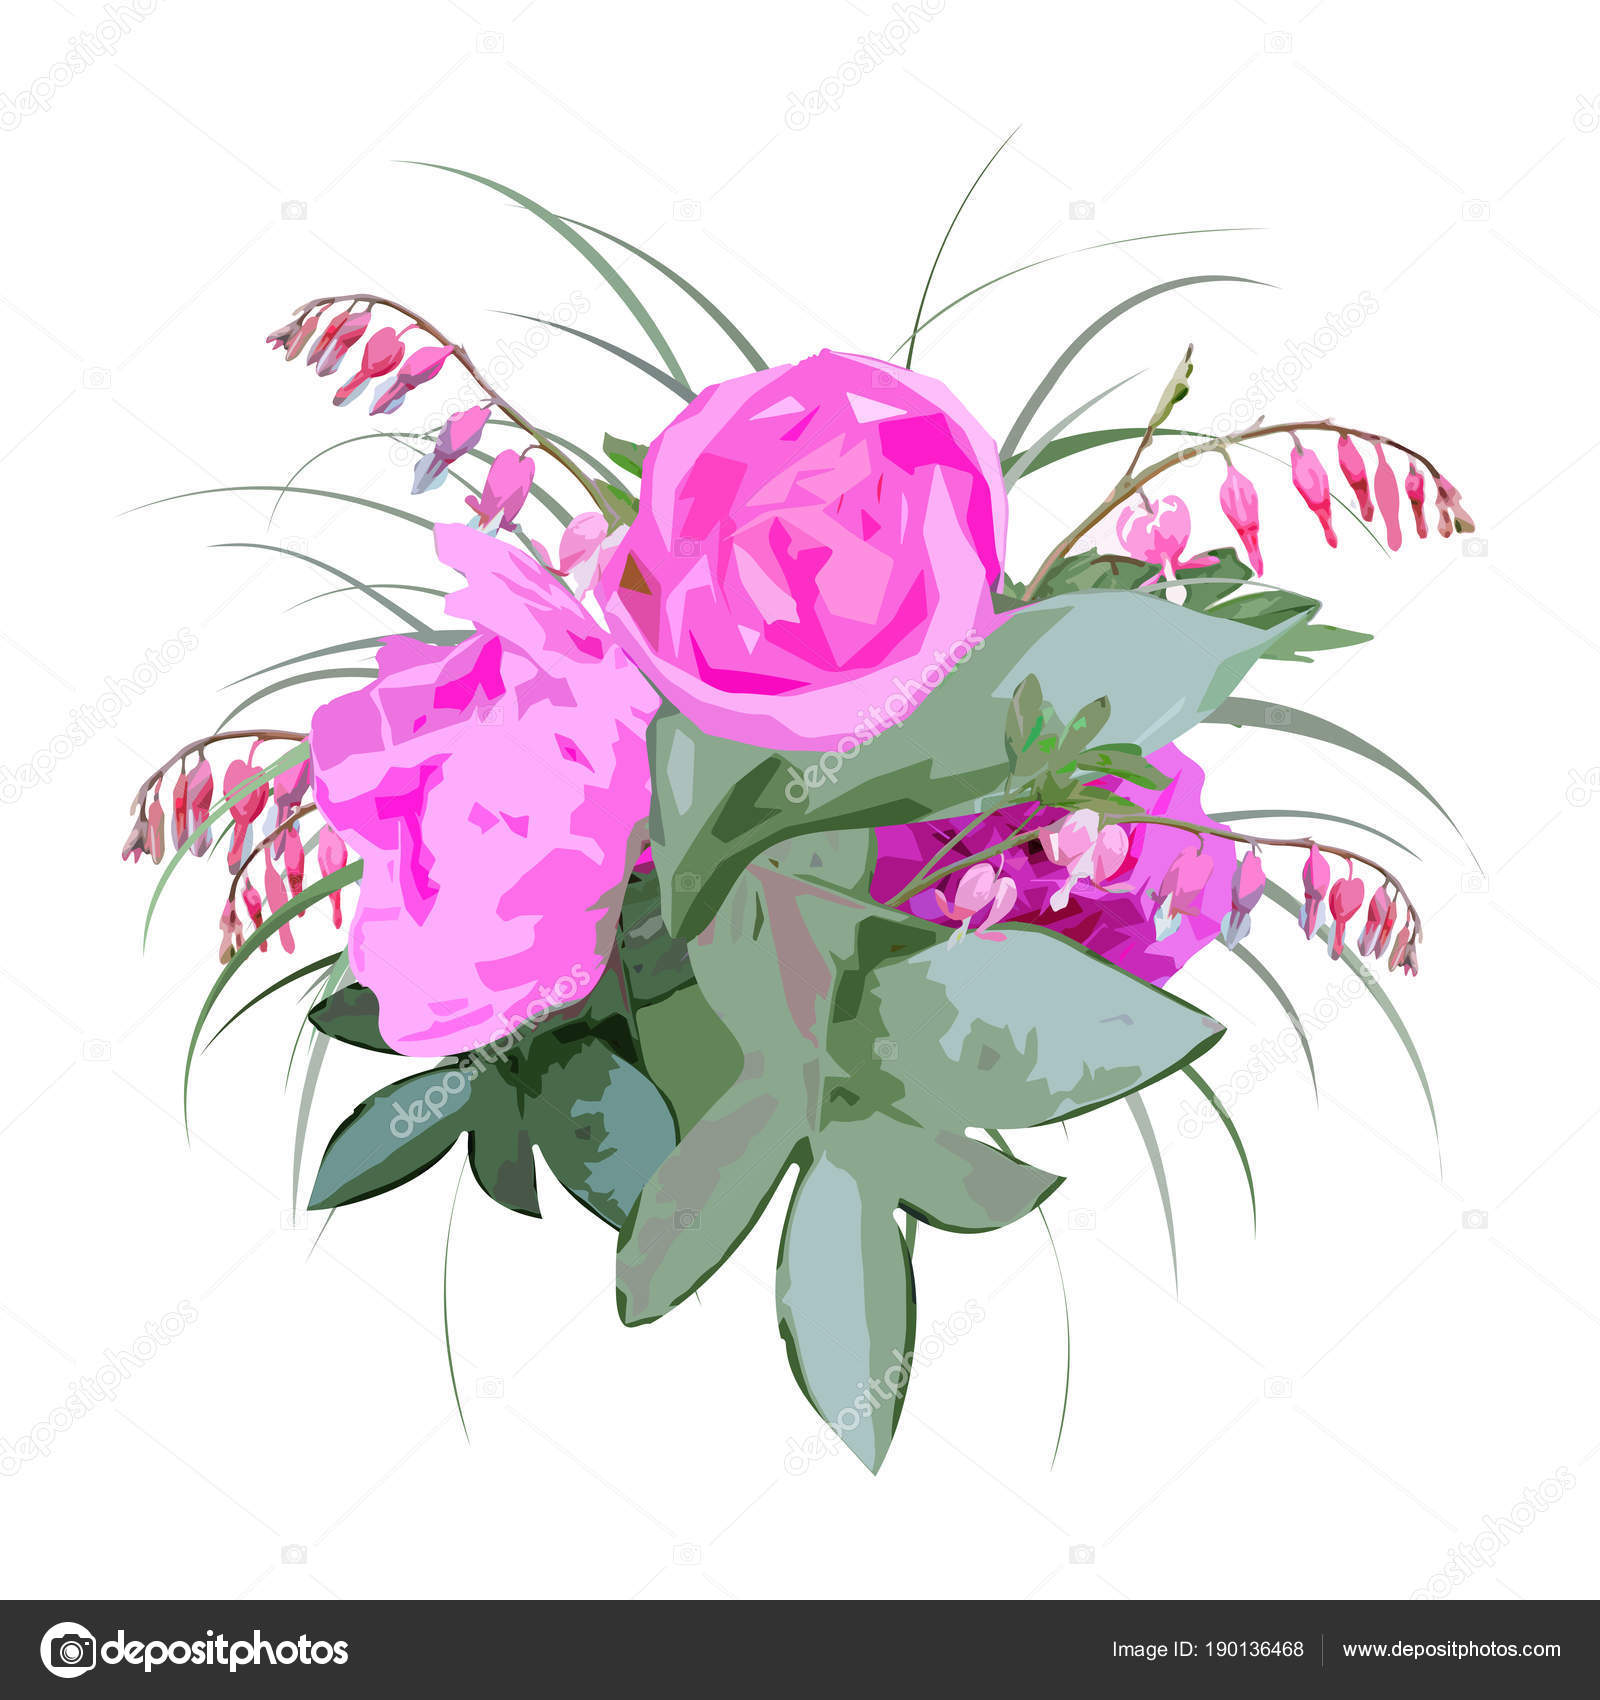 Floral bouquet peony flowers bleeding heart flowers hand drawn floral bouquet peony flowers bleeding heart flowers hand drawn watercolor stock vector izmirmasajfo